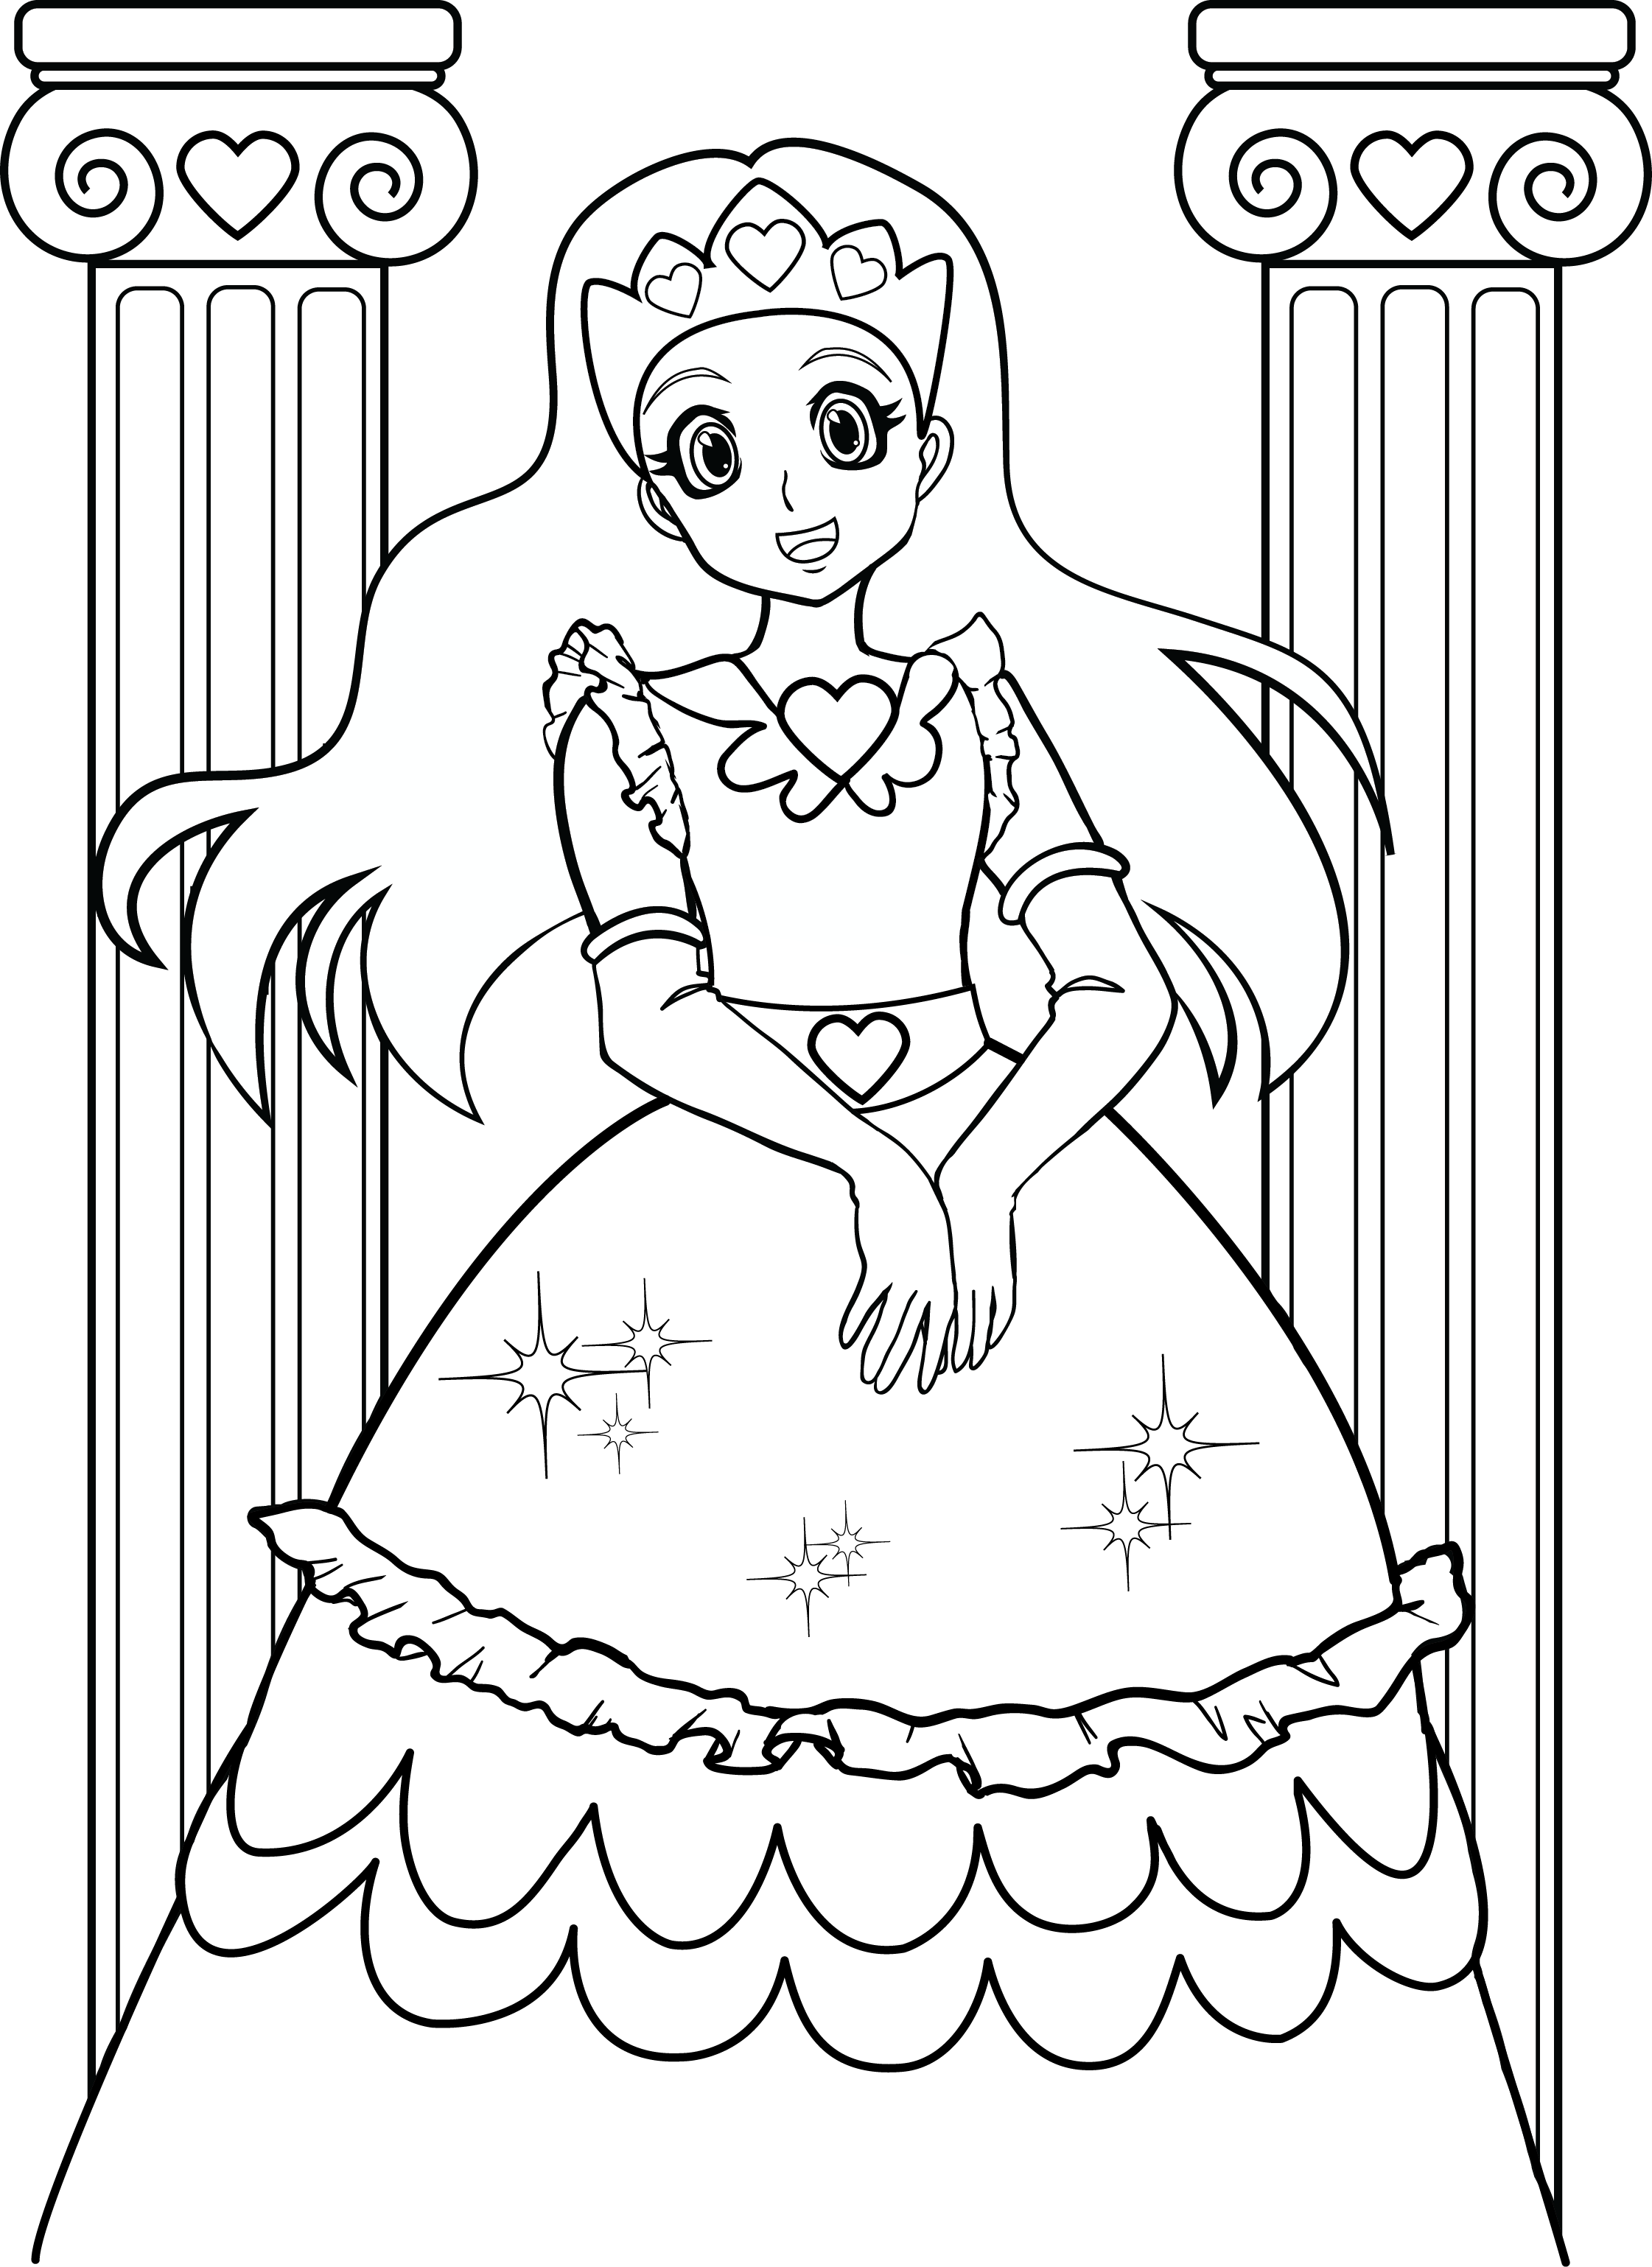 printable coloring pages for girls 2 - Coloring Pages To Print For Girls